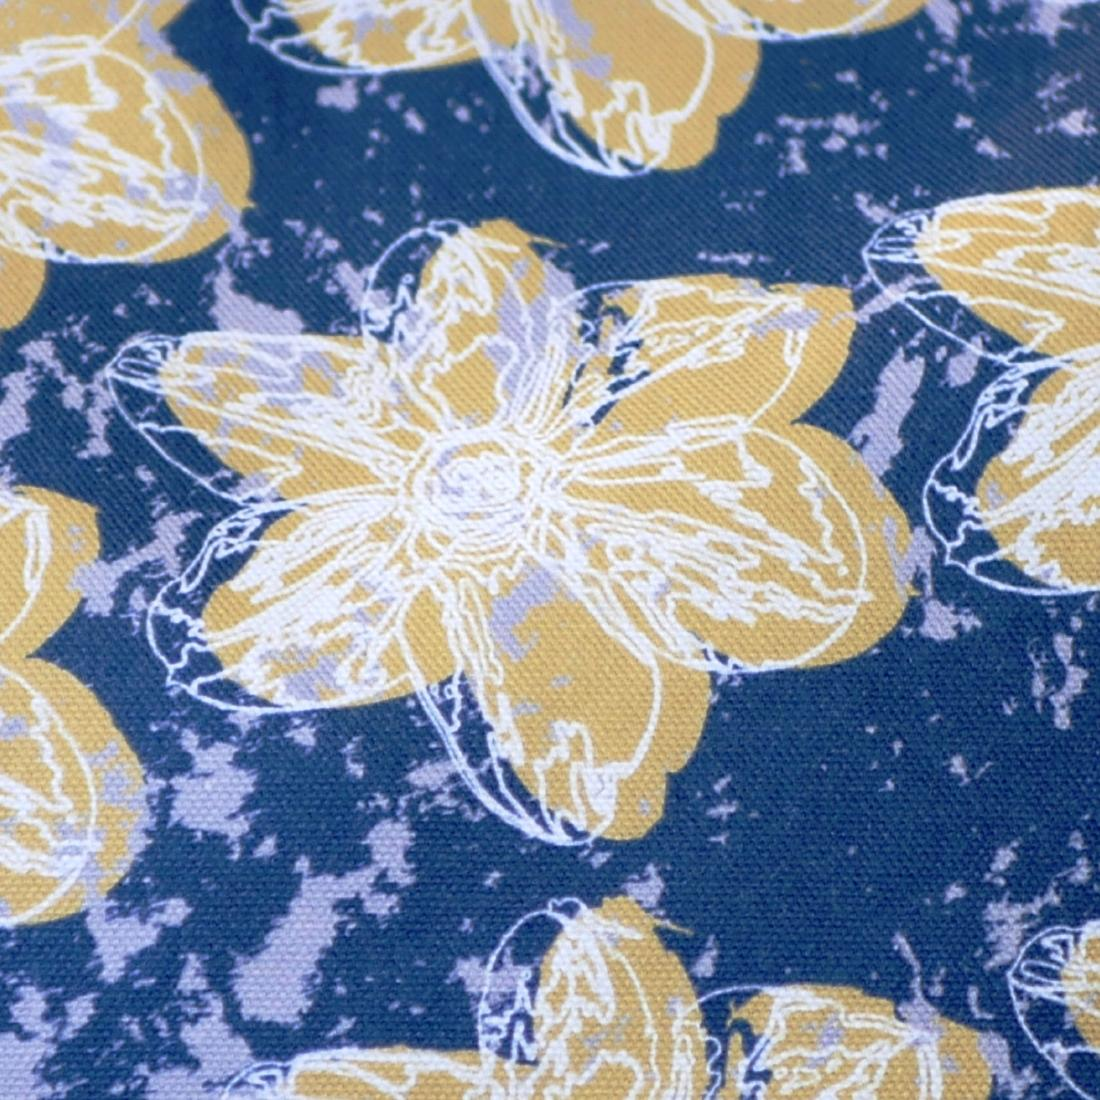 Mustard yellow flower with a matching coloured reverse, set on an oxford blue background with a light grey colour splash. Designed by thetinkan, the flower splash travel beauty washbag featuring the white traced outline of a?narcissus flower is made from panama cotton with black waterproof lining and matching black sturdy zip. Generously sized for all your travel or home needs.? VIEW PRODUCT >>